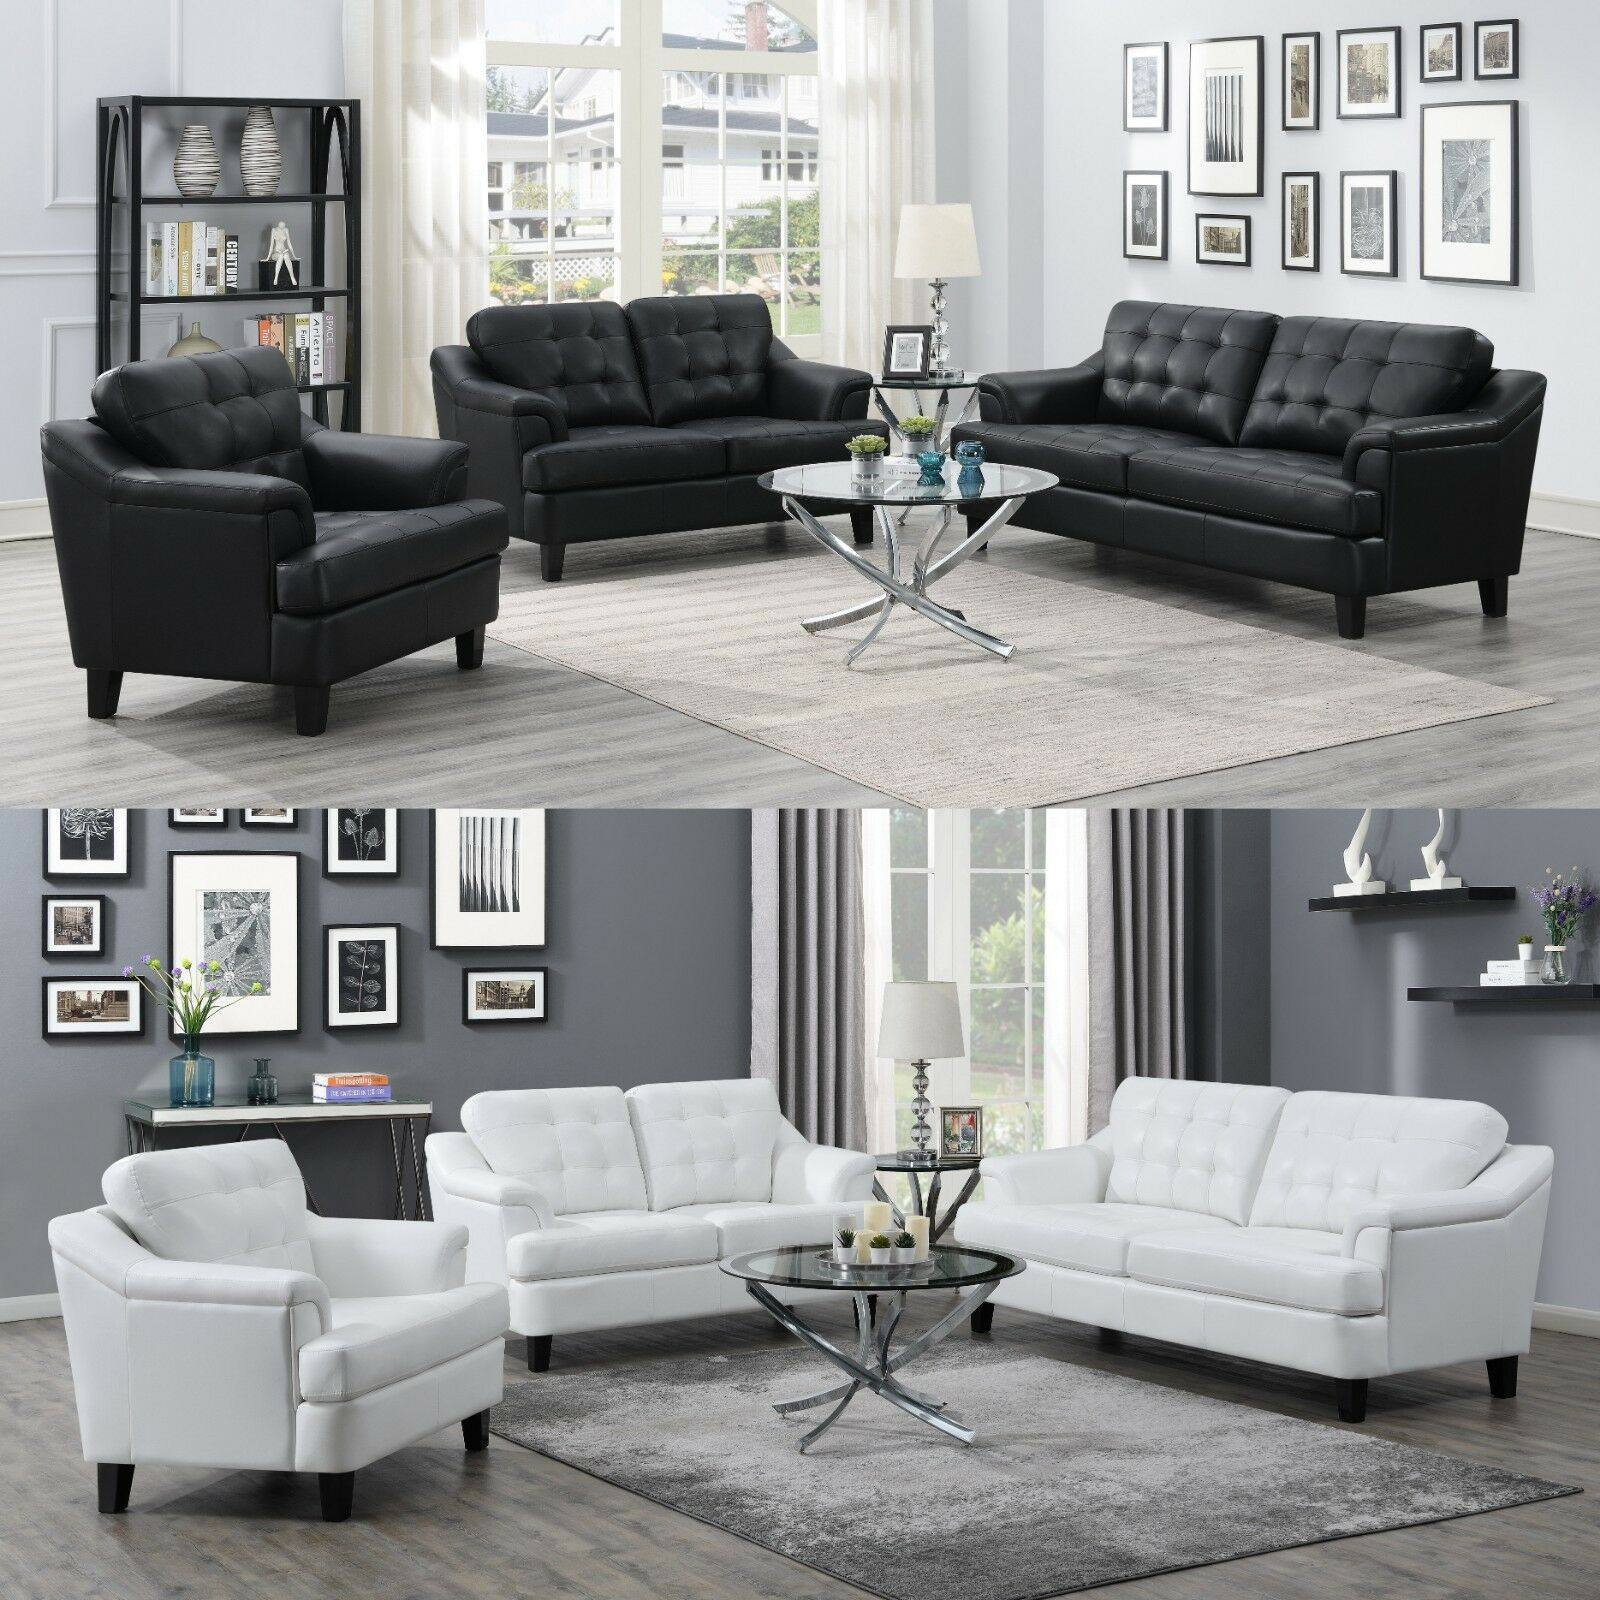 Modern 3 Piece Sofa Loveseat Chair Set Black Or White Performance Faux Leather Sofa Set Ideas Of Sofa Set Sofa Set Couch And Chair Set White Leather Sofas